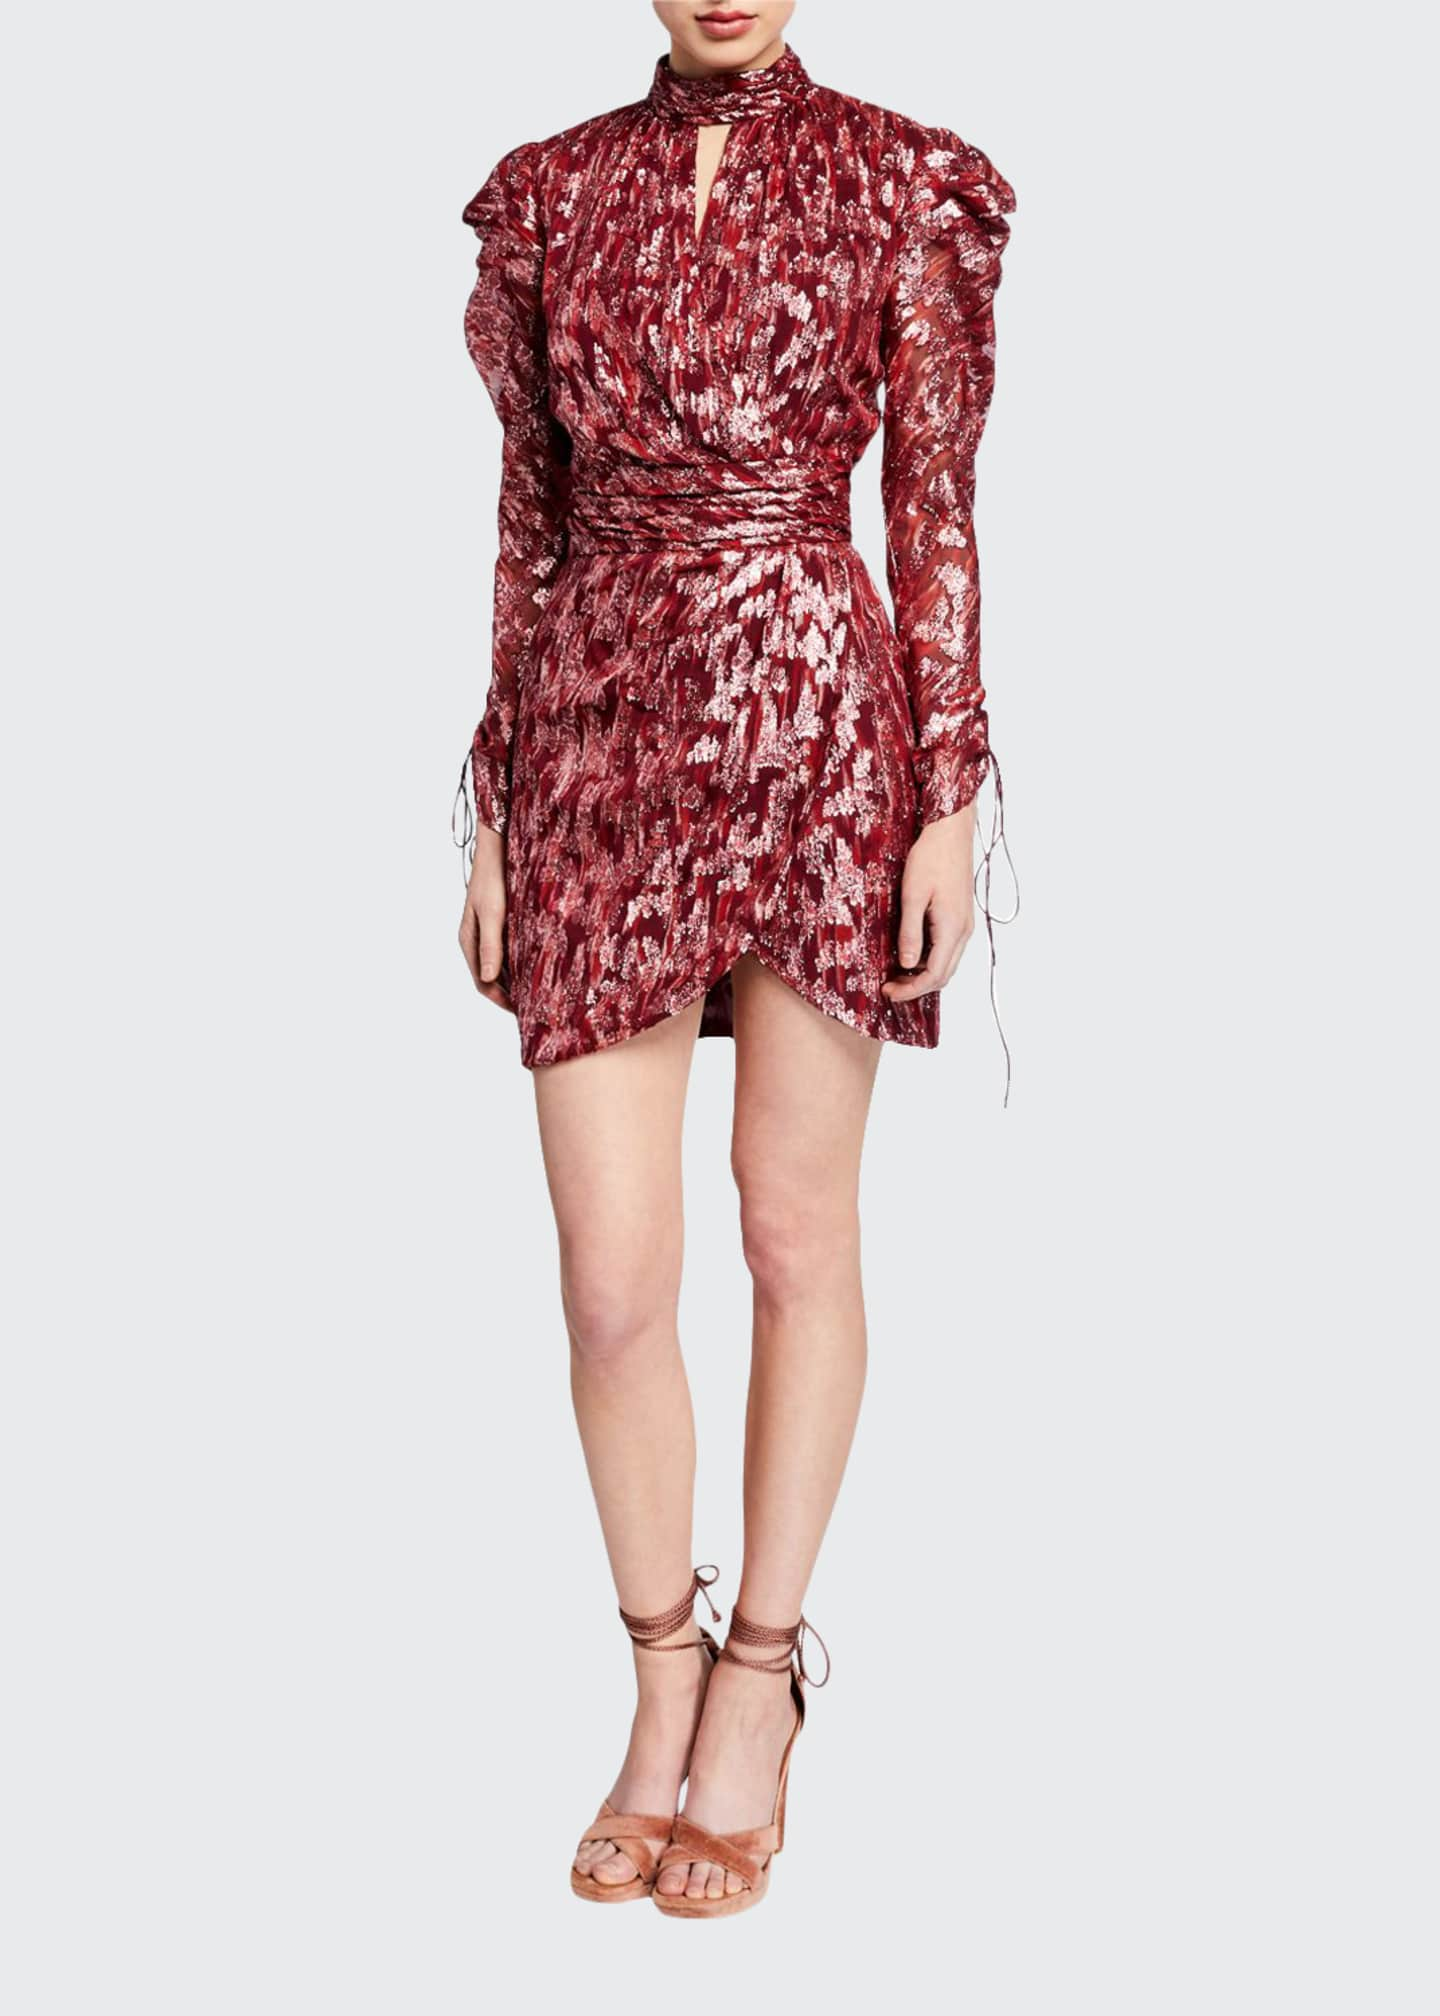 Jonathan Simkhai Metallic Vine Jacquard Mock-Neck Wrap Dress